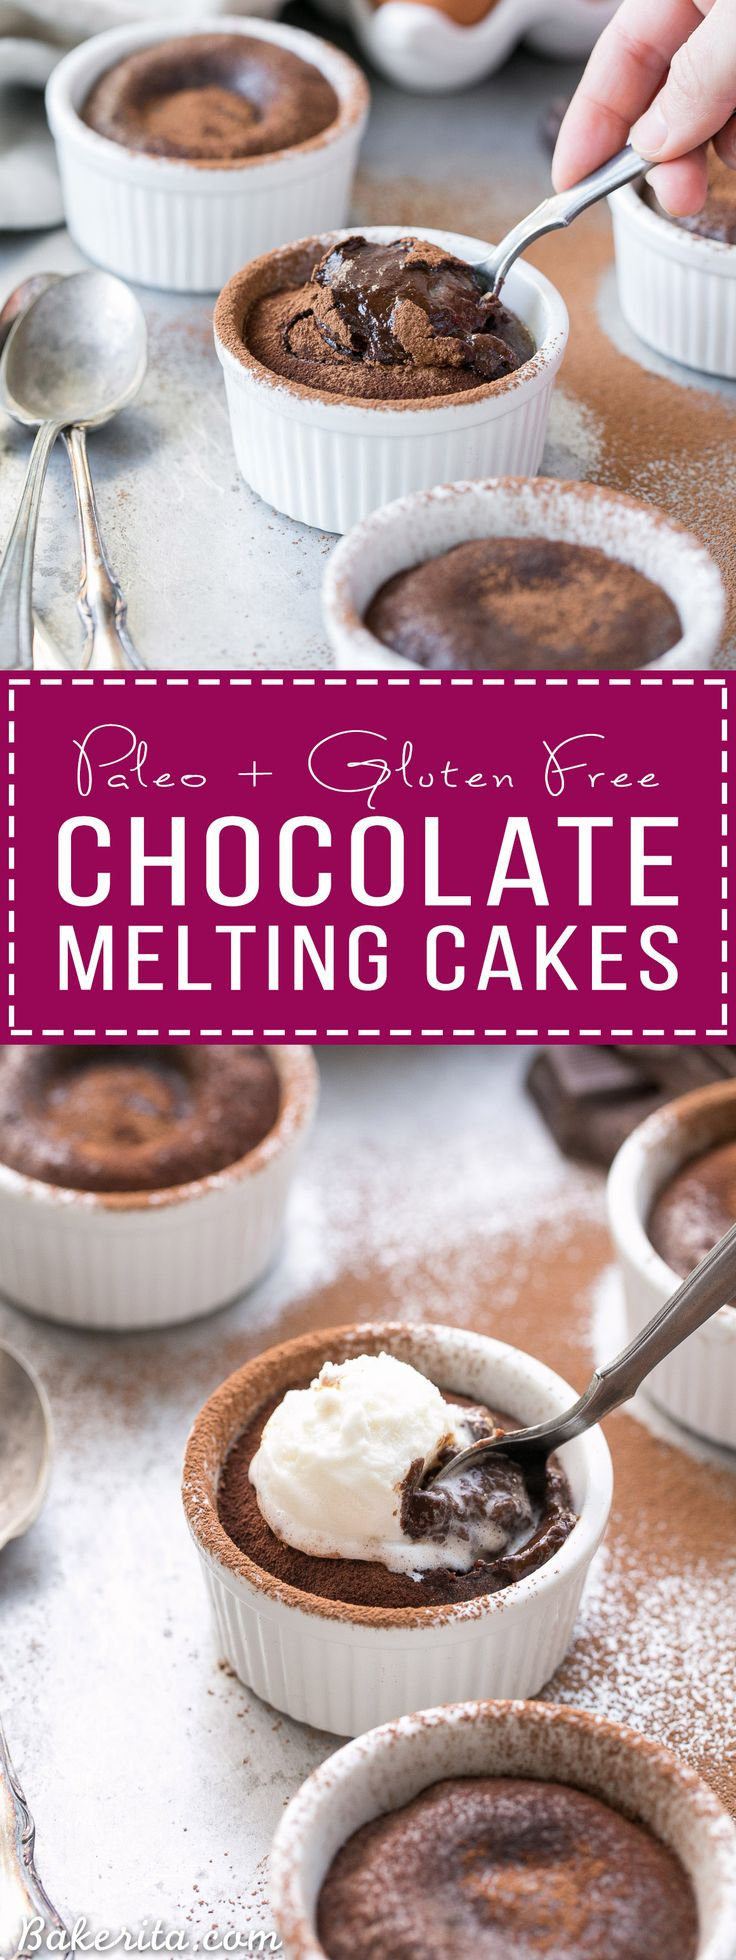 These Paleo Chocolate Melting Cakes are incredibly gooey, rich and chocolatey! This easy, five-ingredient recipe is a healthier take on Carnival's Chocolate Melting Cake. You'll love the melting, gooey center!